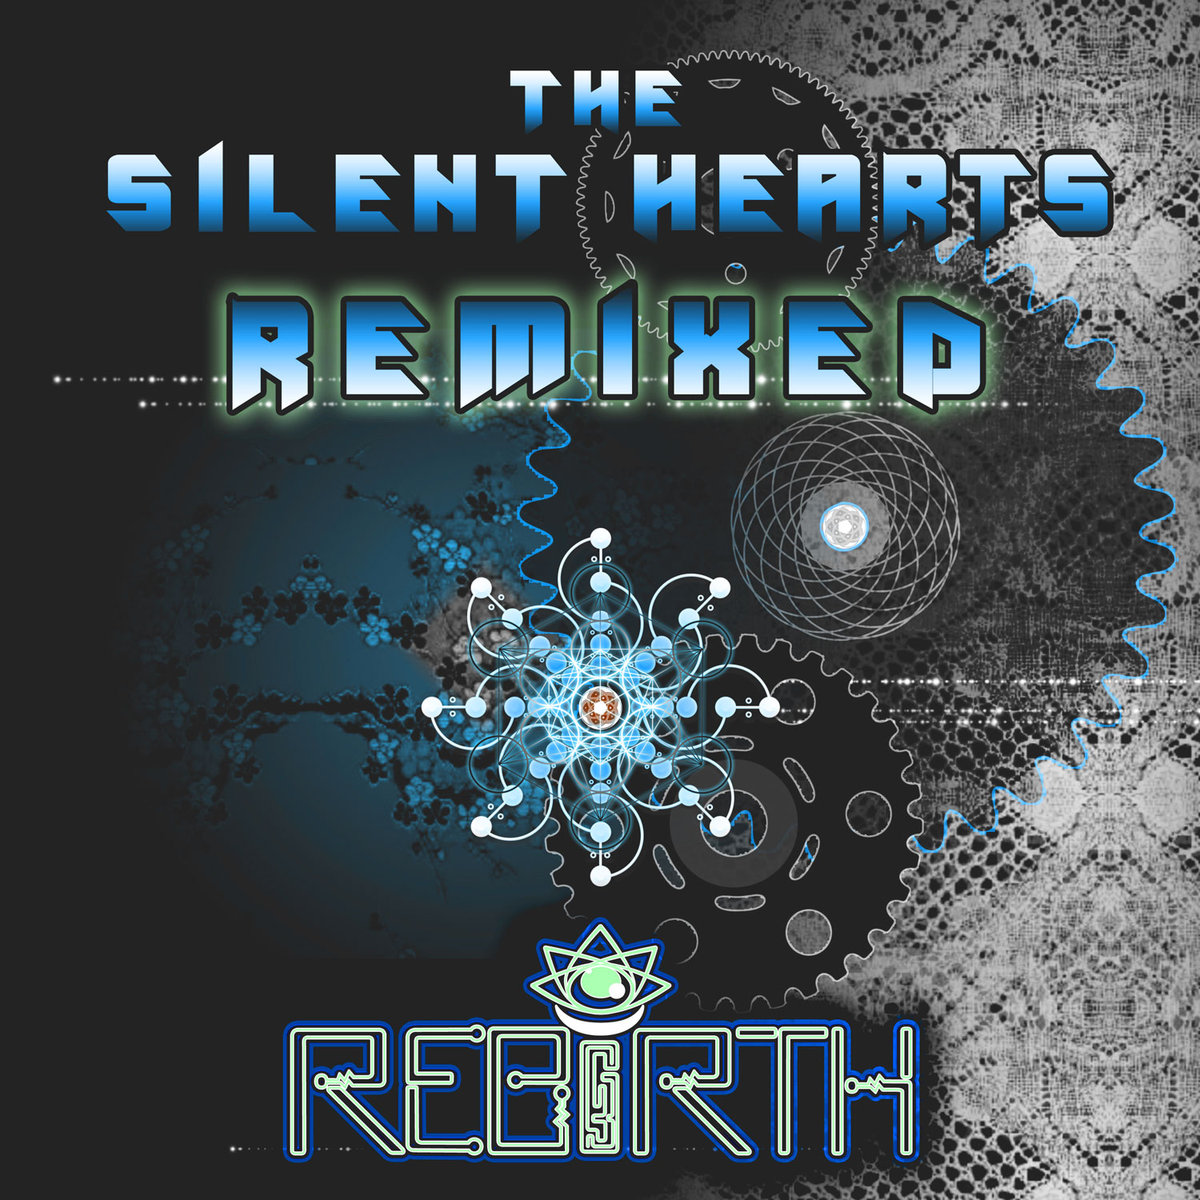 Rebirth - The Silent Hearts: Remixed